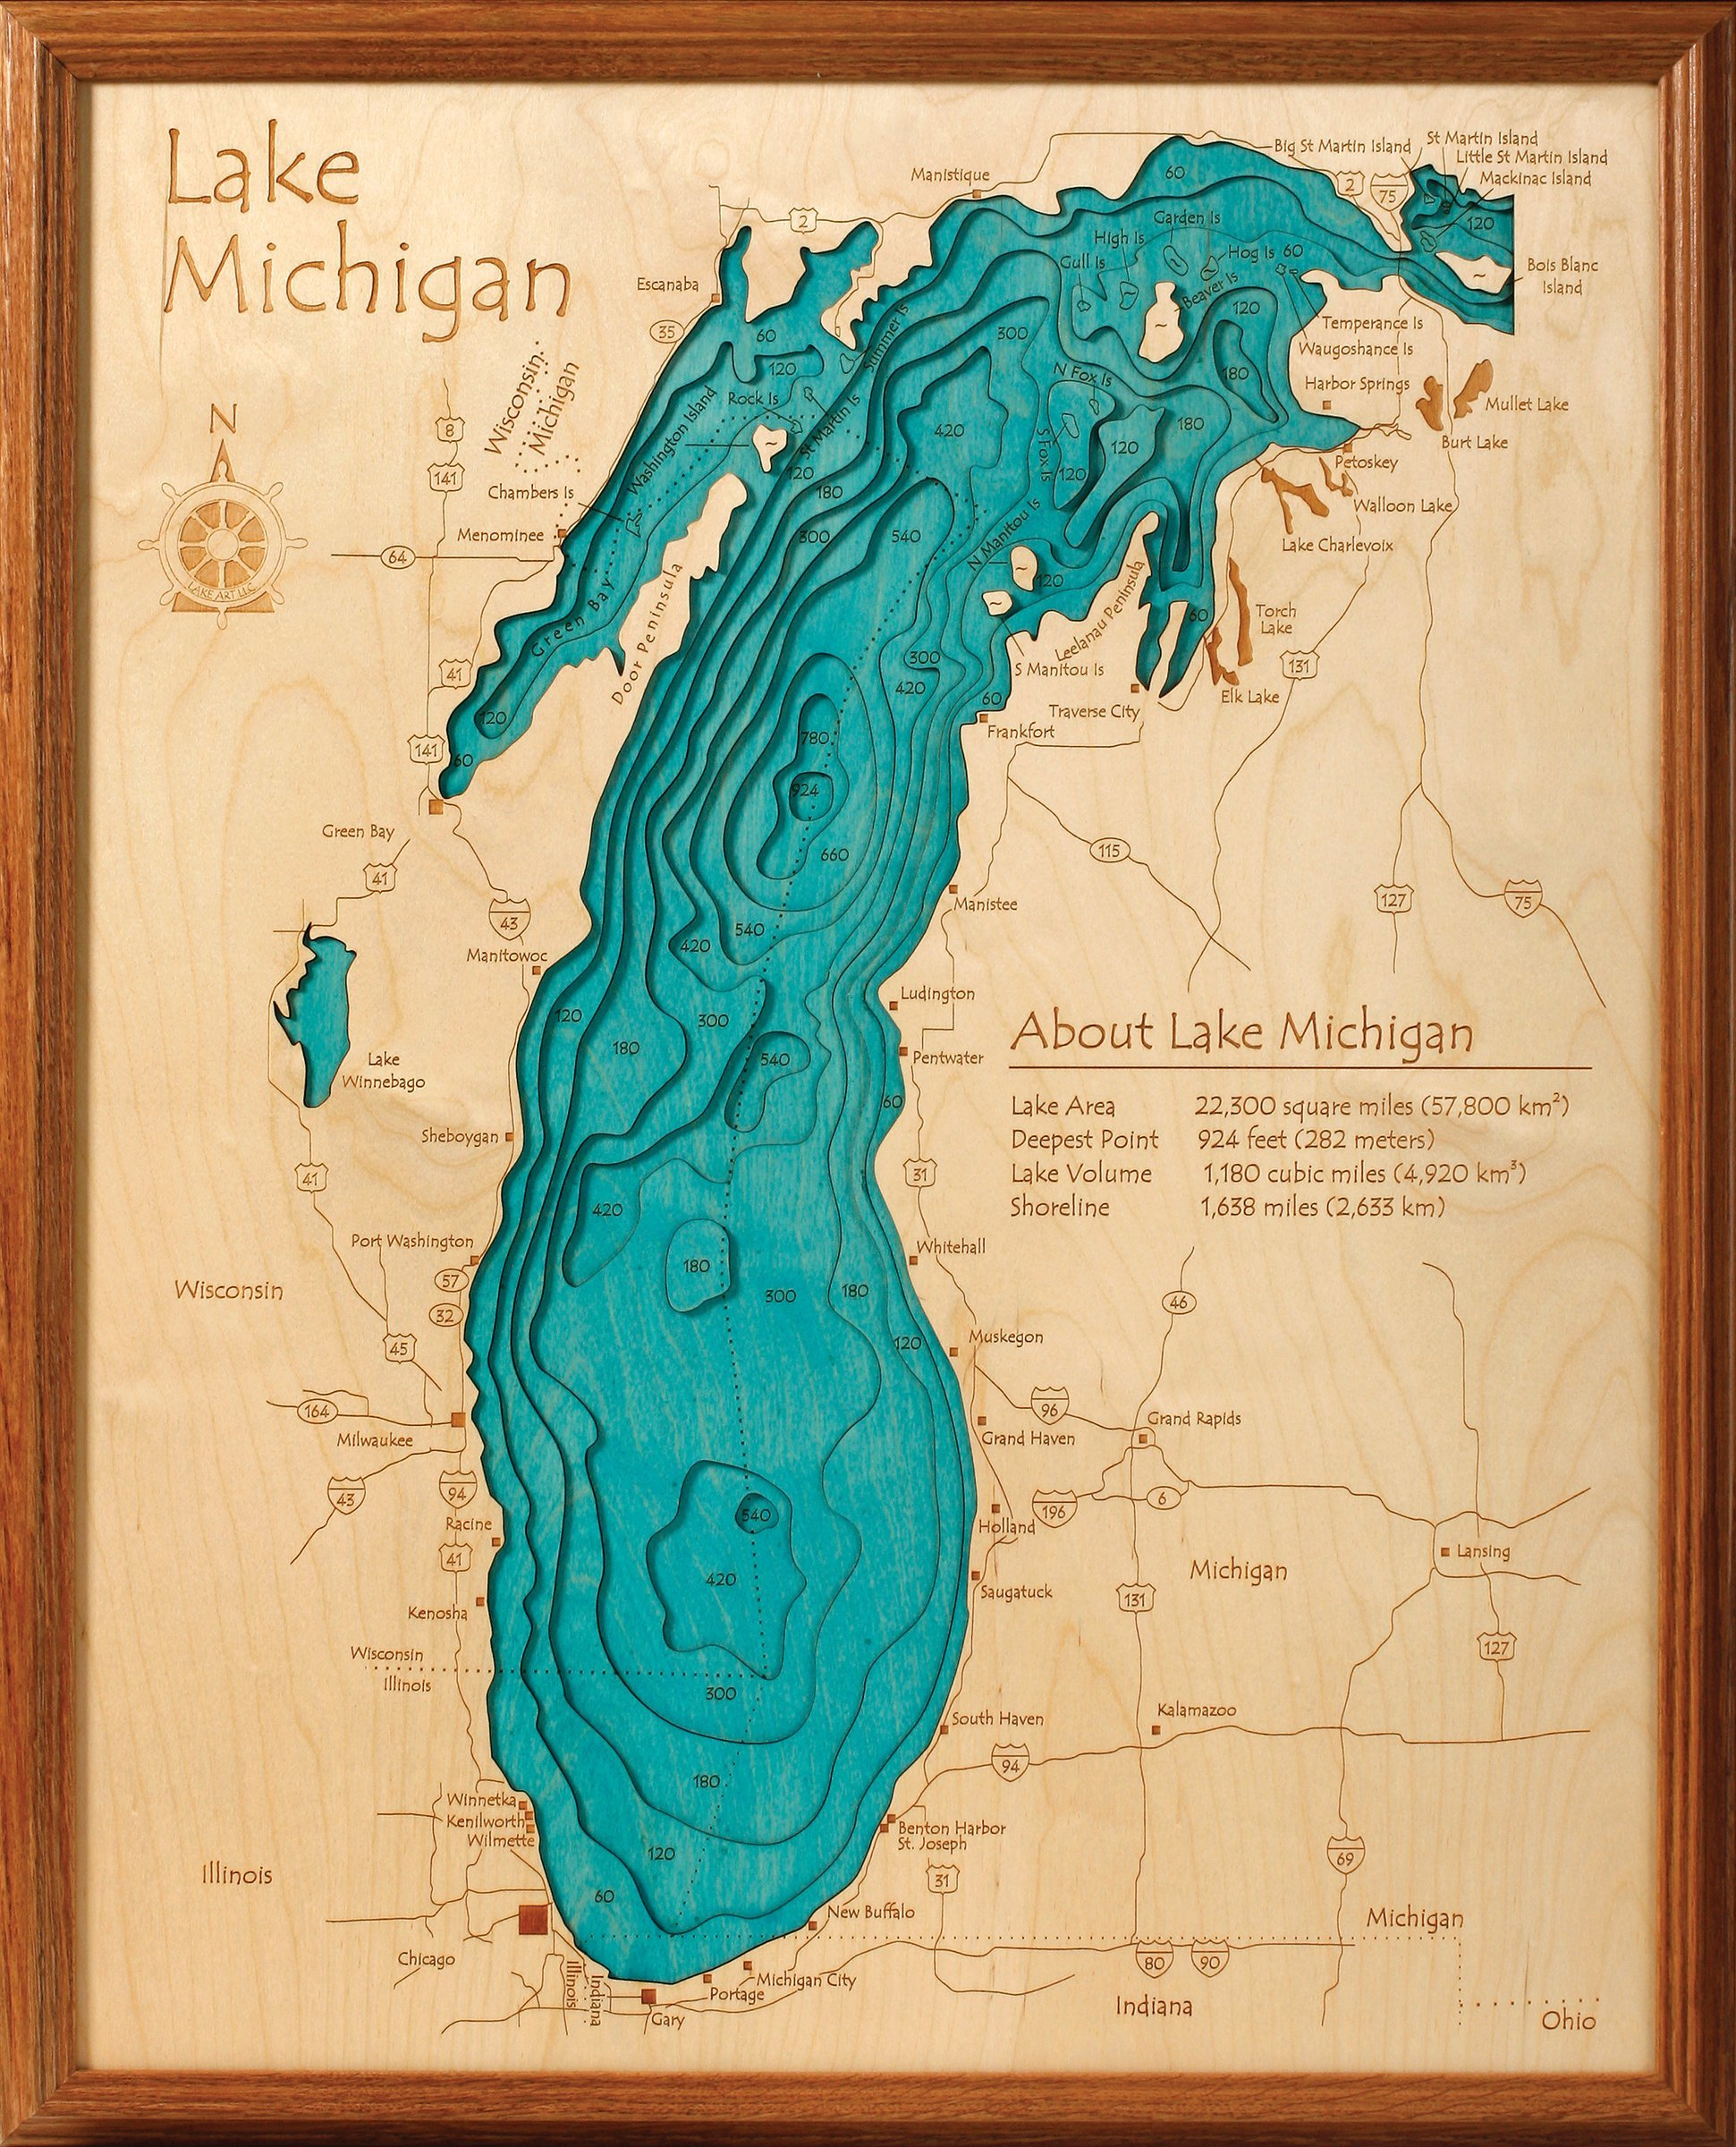 Lakes Elizabeth and Mary (Twin Lakes) in McHenry Kenosha WI, IL WI - 3D Map 16 x 20 IN - Laser carved wood nautical chart and topographic depth map. by Long Lake Lifestyle